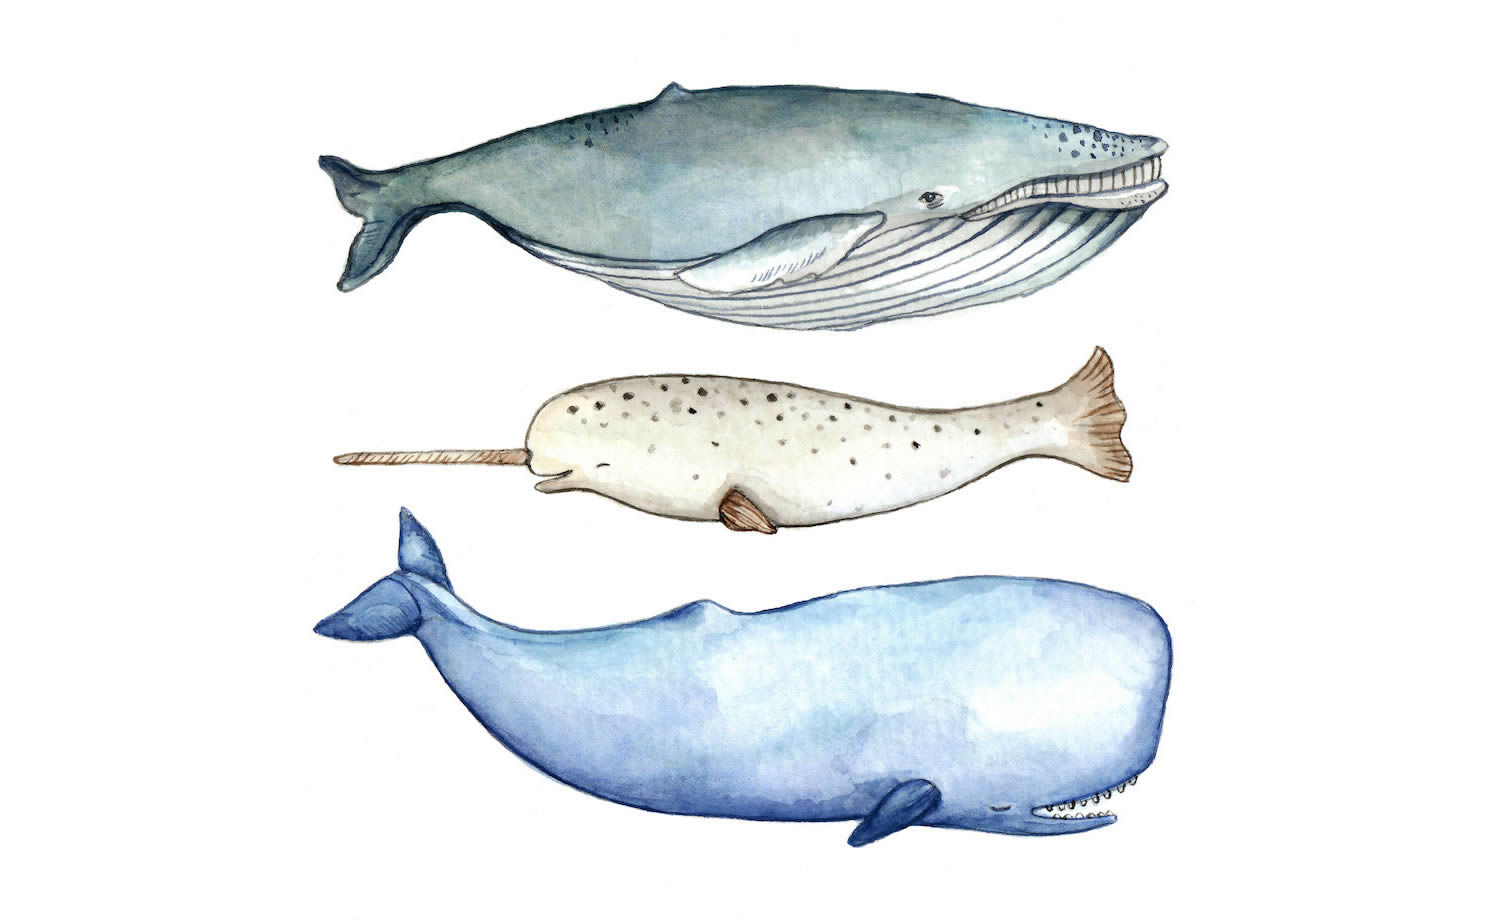 3 whales by brooke weeber